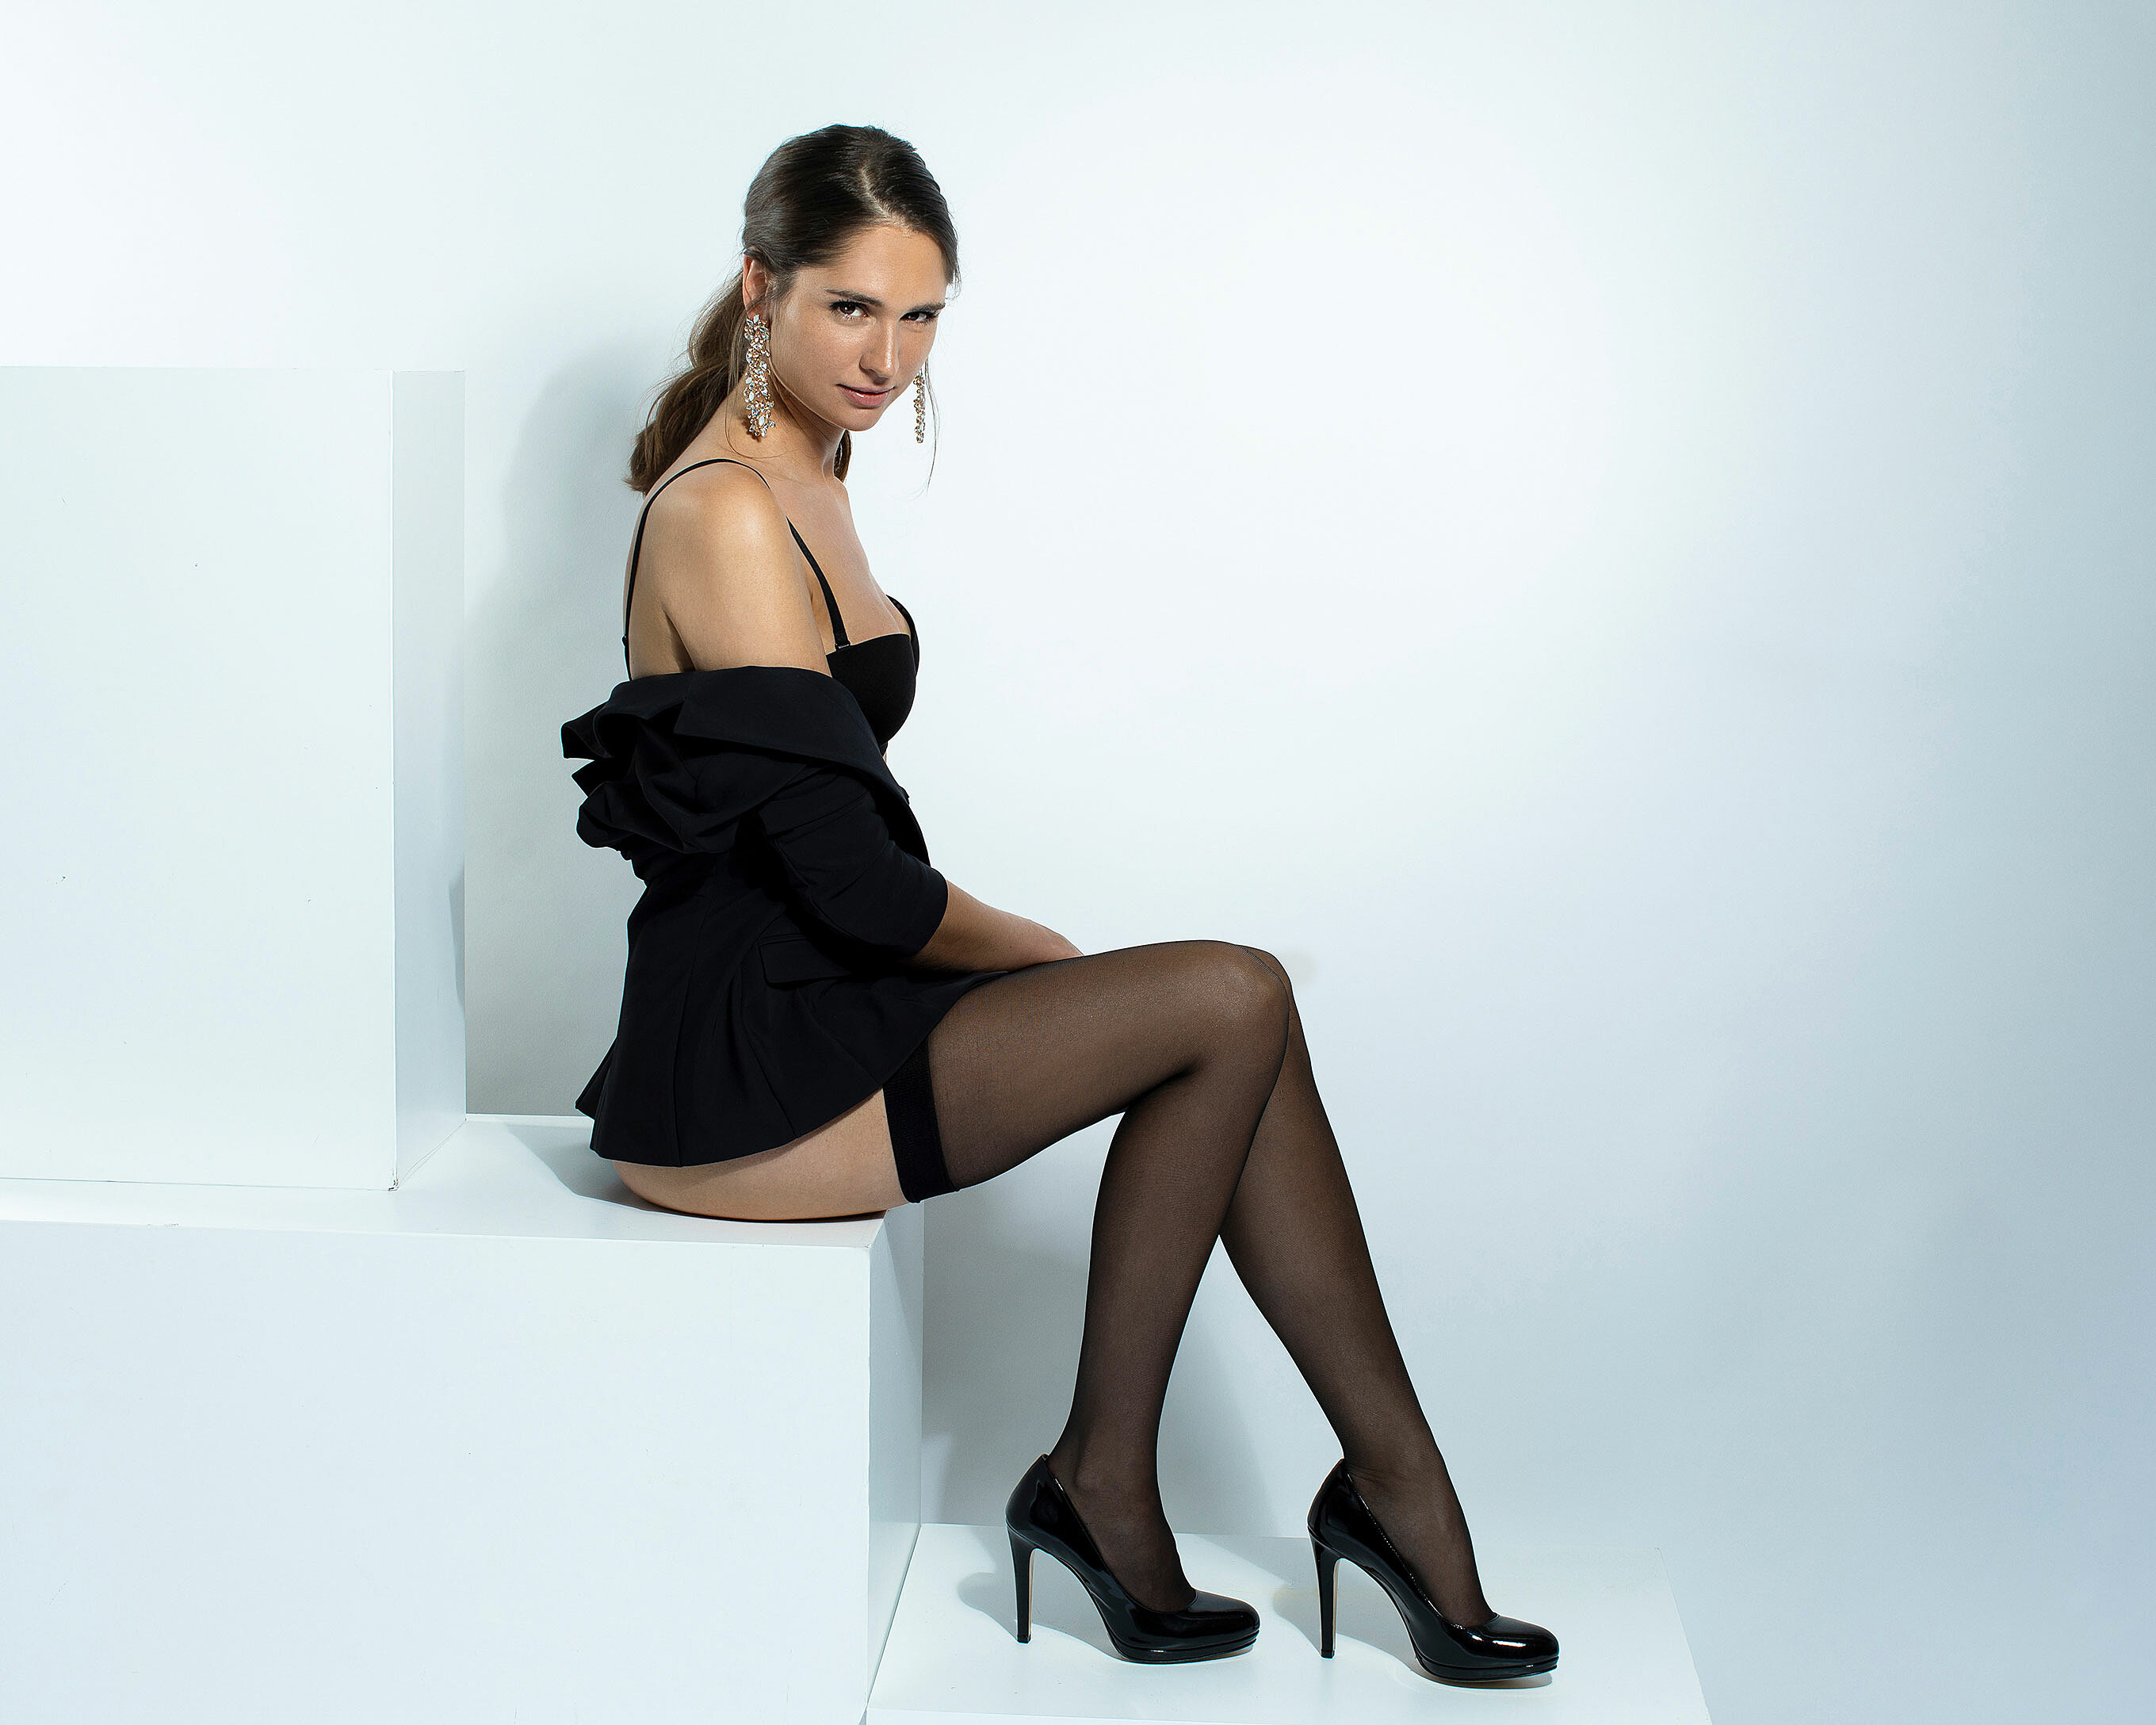 A brown hair model with a strong ponytail wears a black bra and a black blazer with black suspenders in black high heels